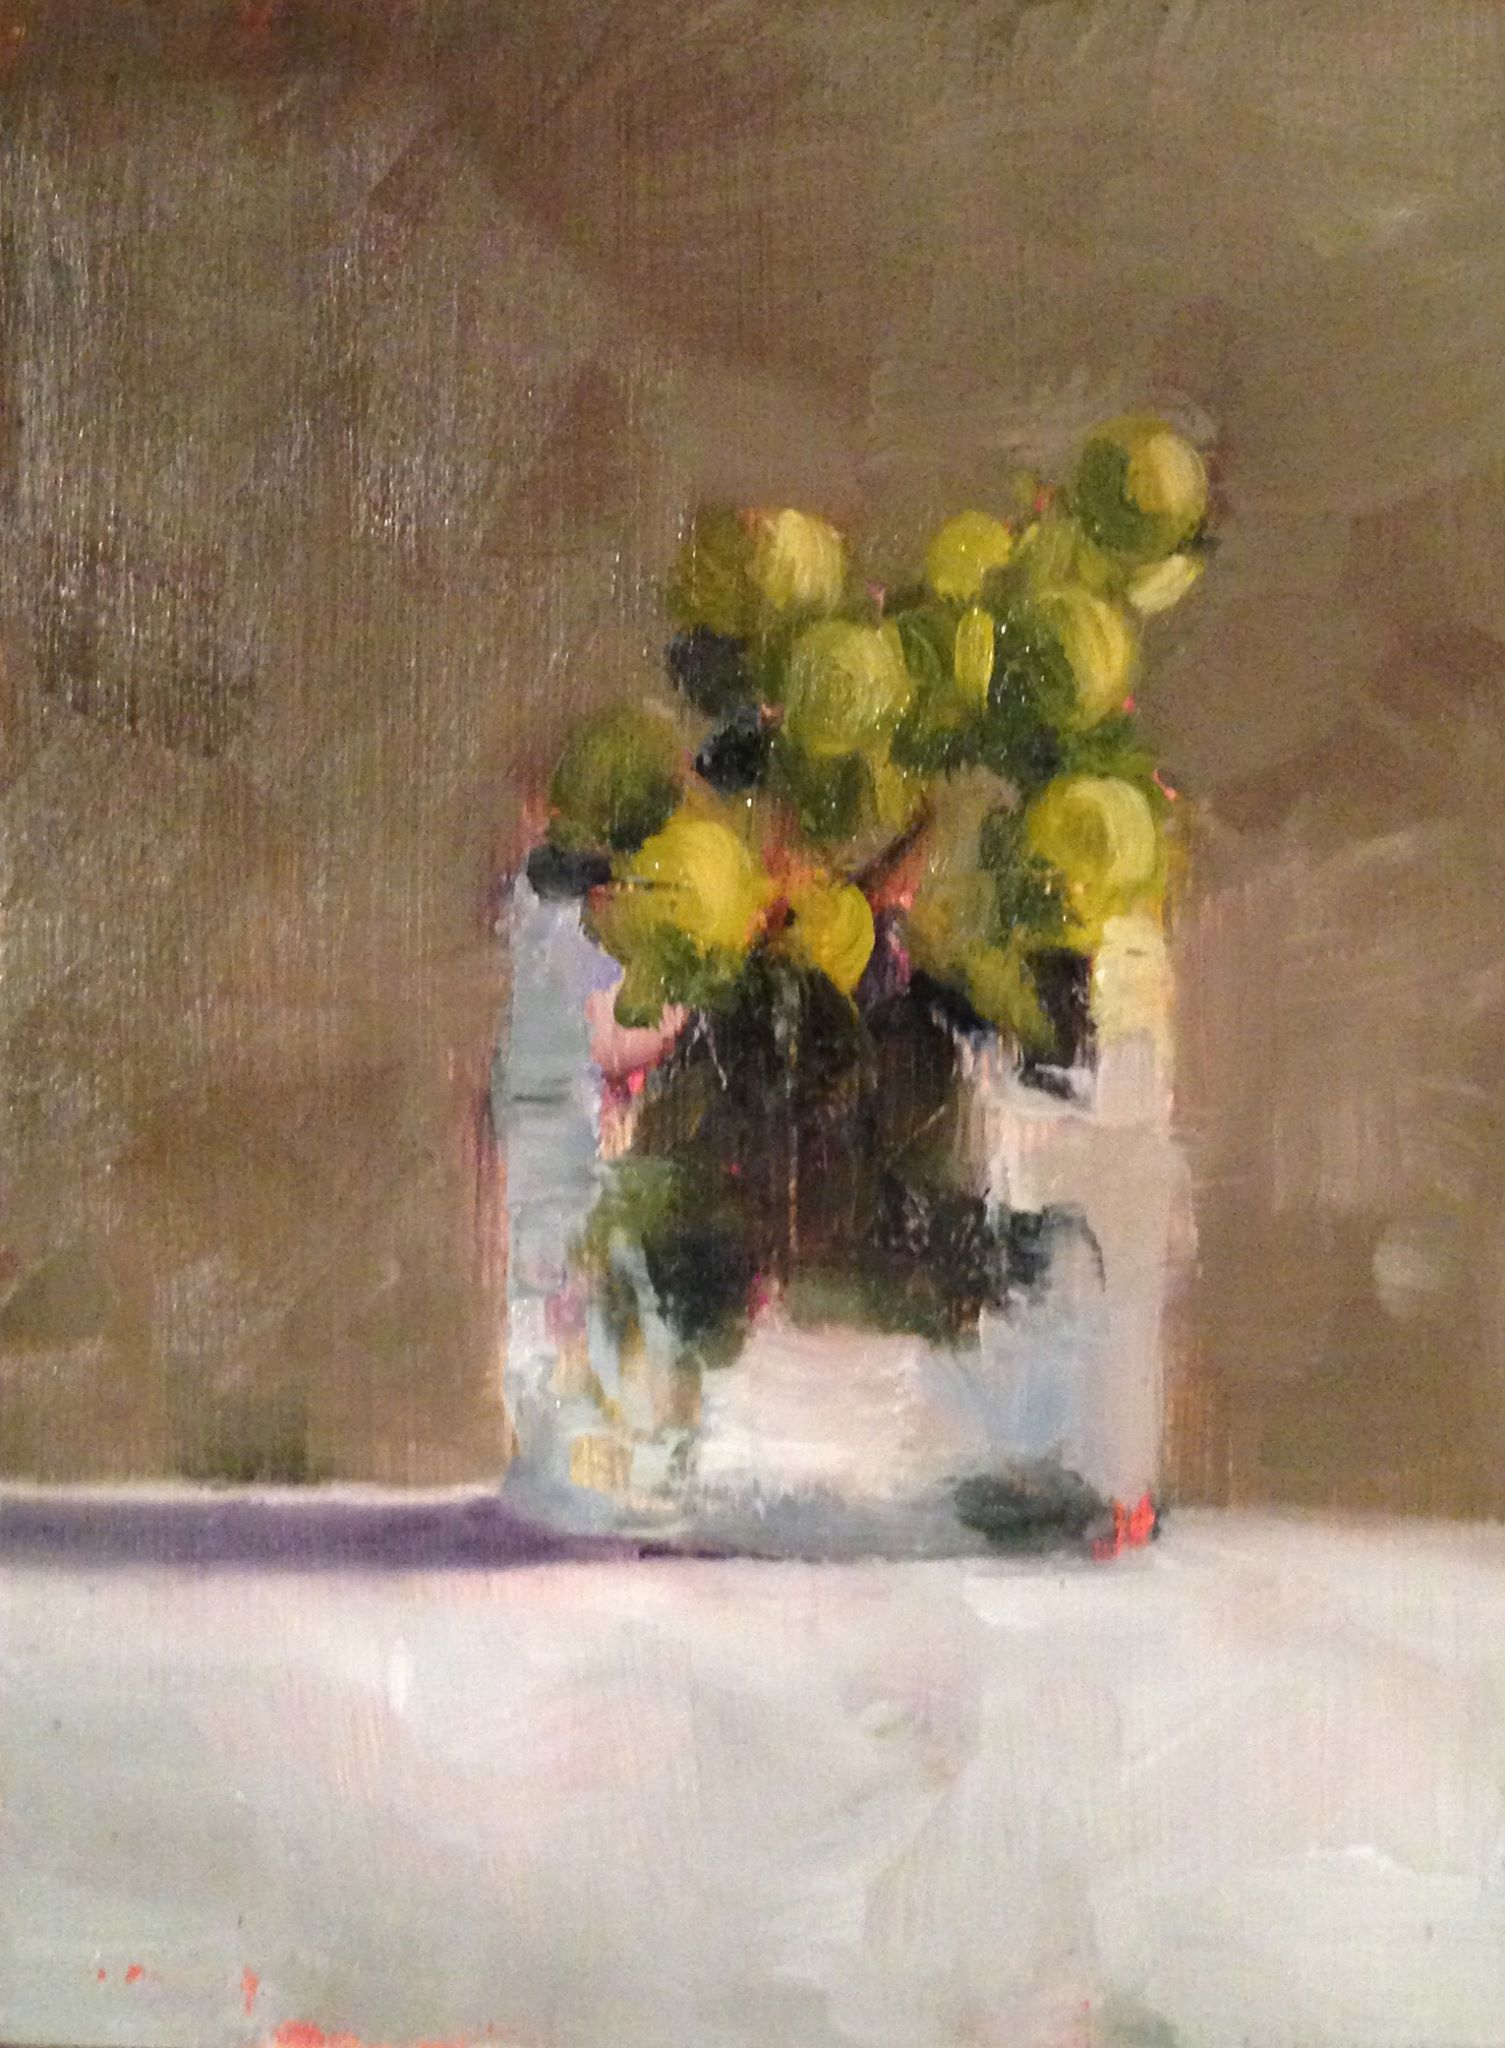 Berry Bouquet, Oil on Board, 5x7, SOLD